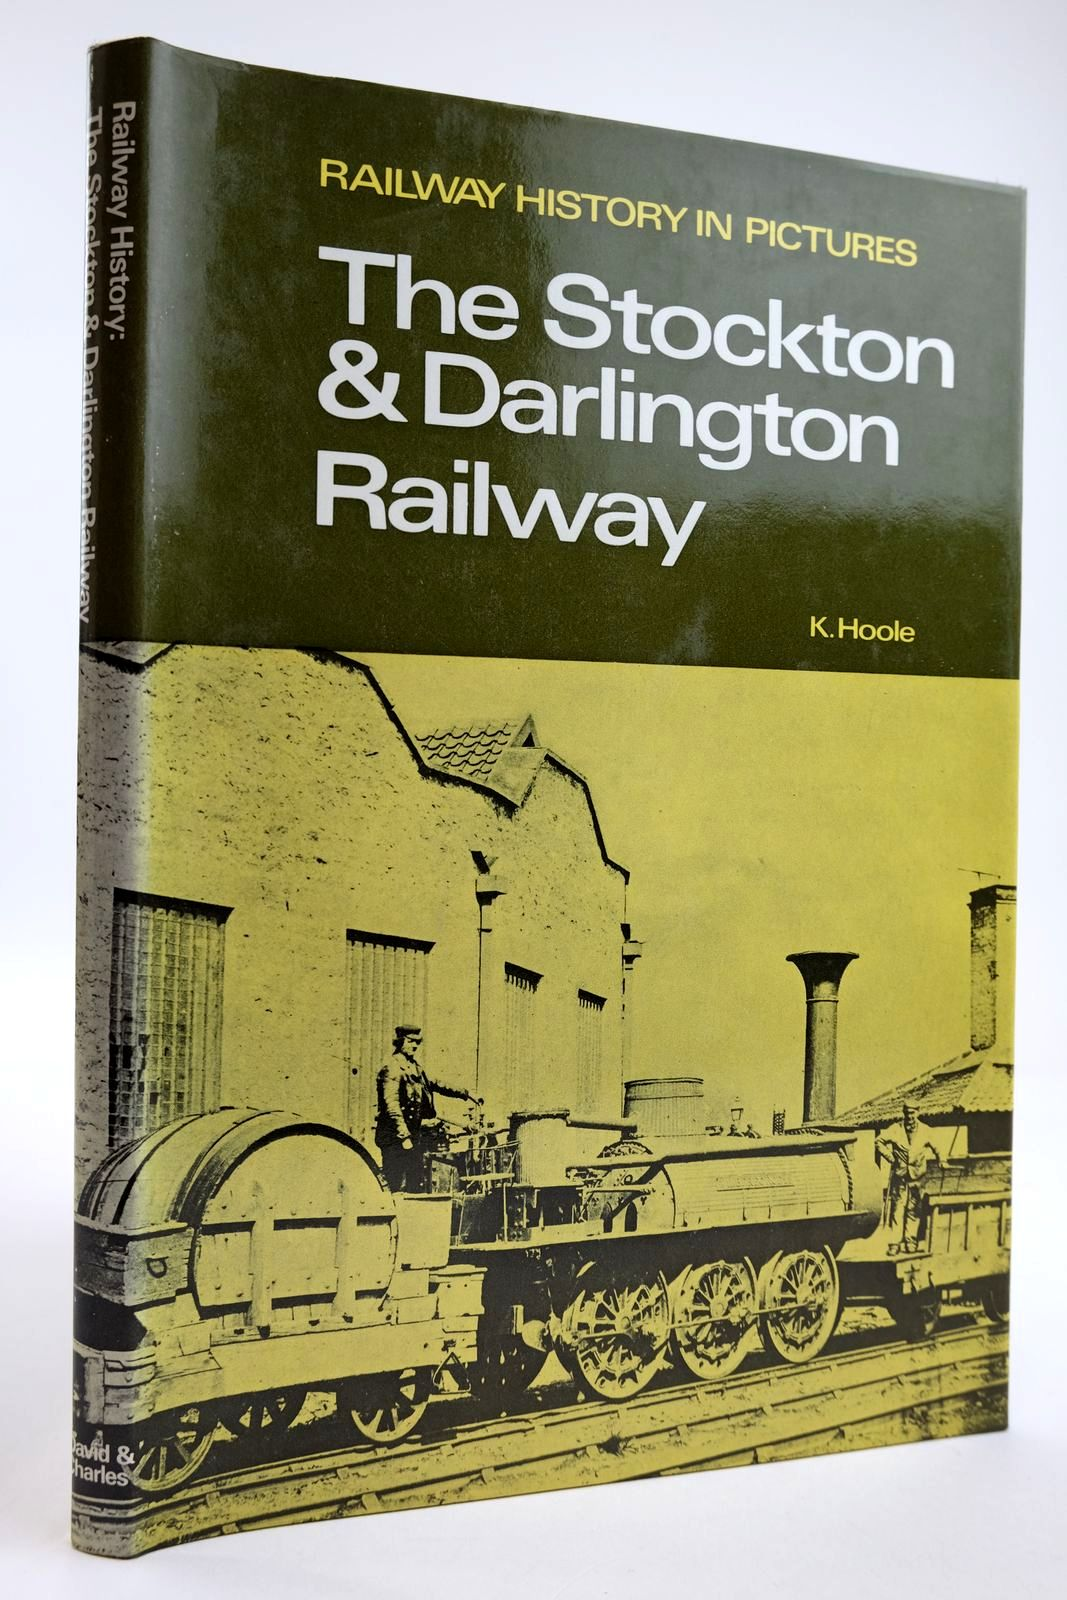 Photo of RAILWAY HISTORY IN PICTURES: THE STOCKTON & DARLINGTON RAILWAY written by Hoole, K. published by David & Charles (STOCK CODE: 2133808)  for sale by Stella & Rose's Books